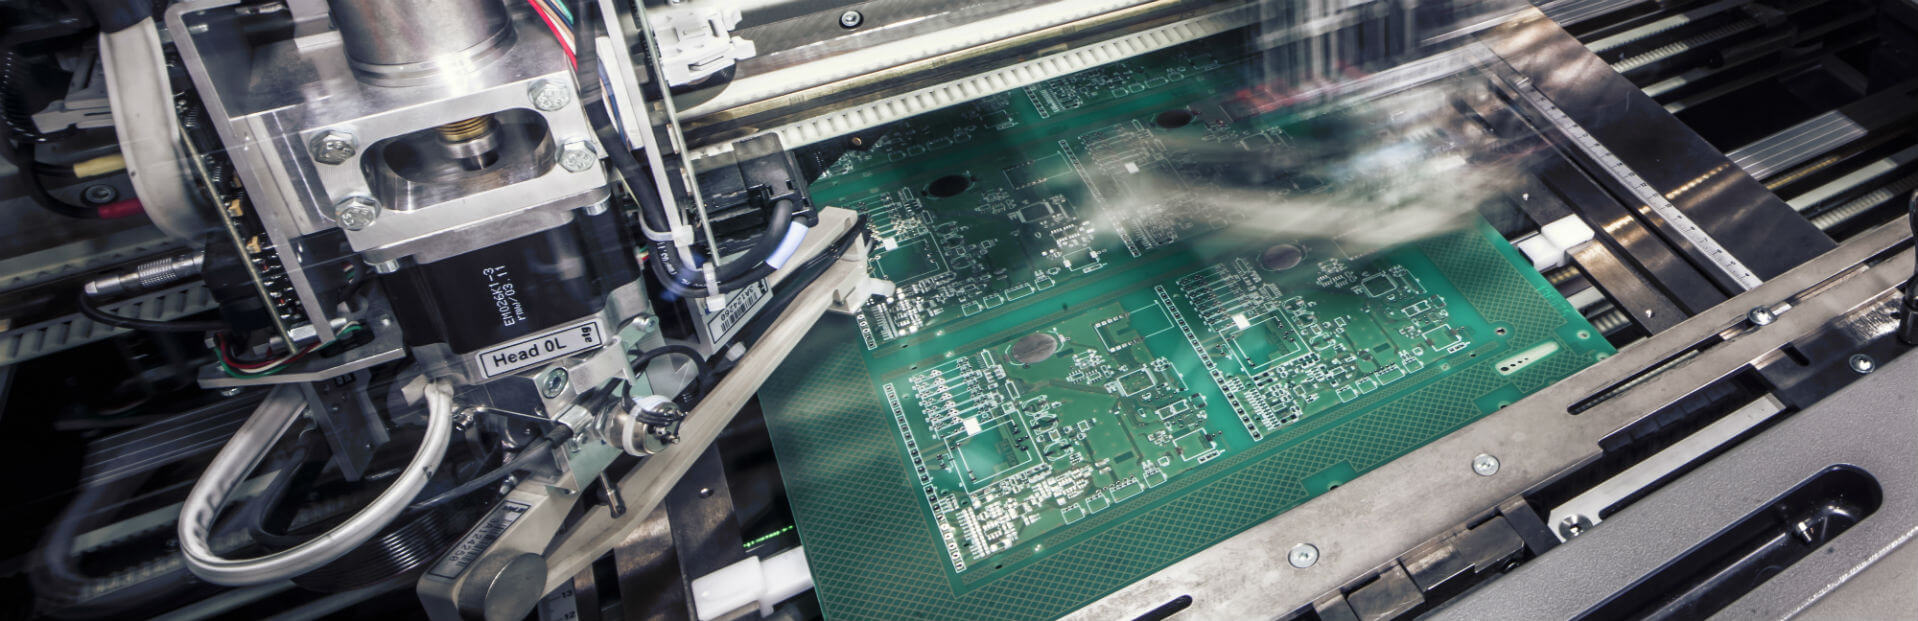 Printed Circuit Boards Pcb Manufactory Of Board Machine Assembly Optimized Manufacturing Procedures